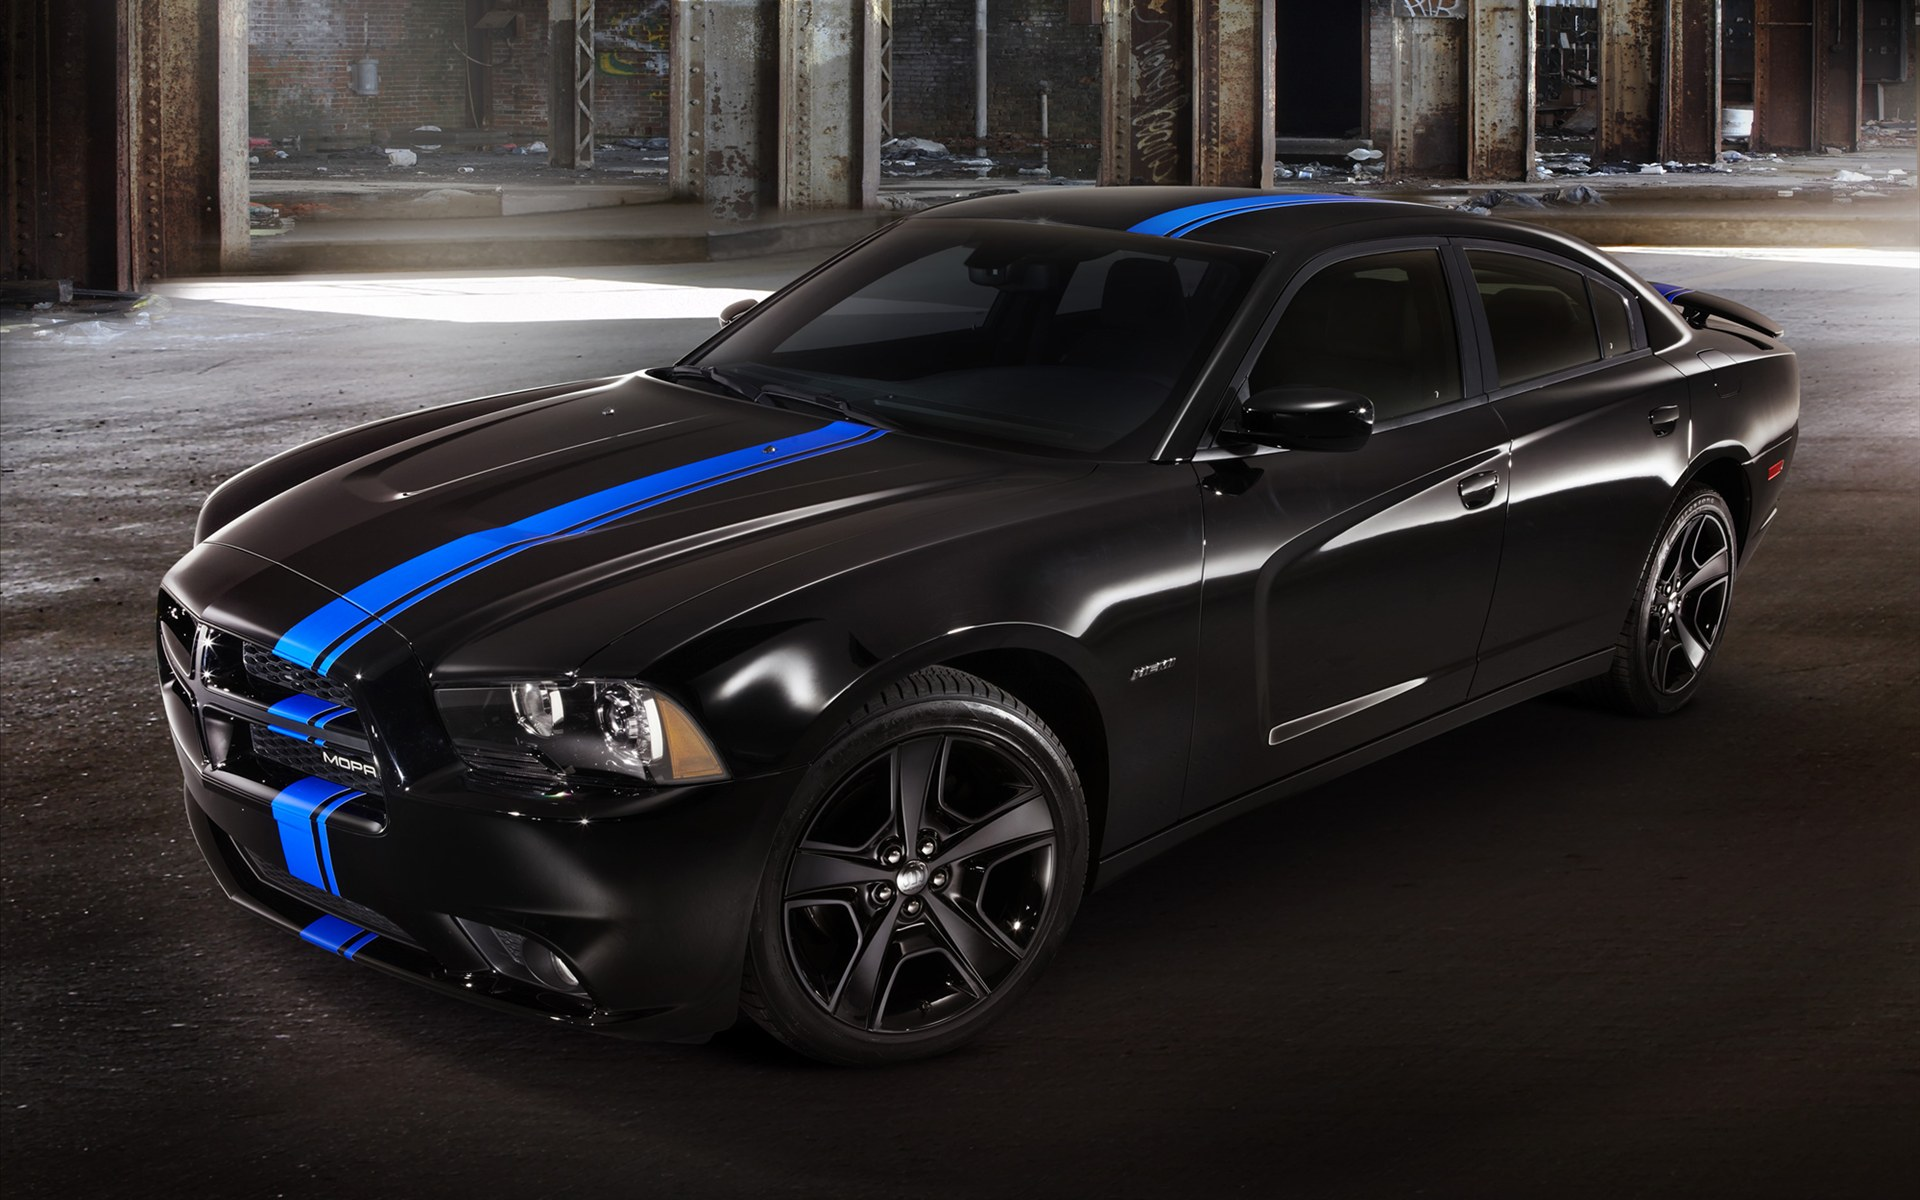 2011 dodge charger mopar wallpaper | hd car wallpapers | id #1985